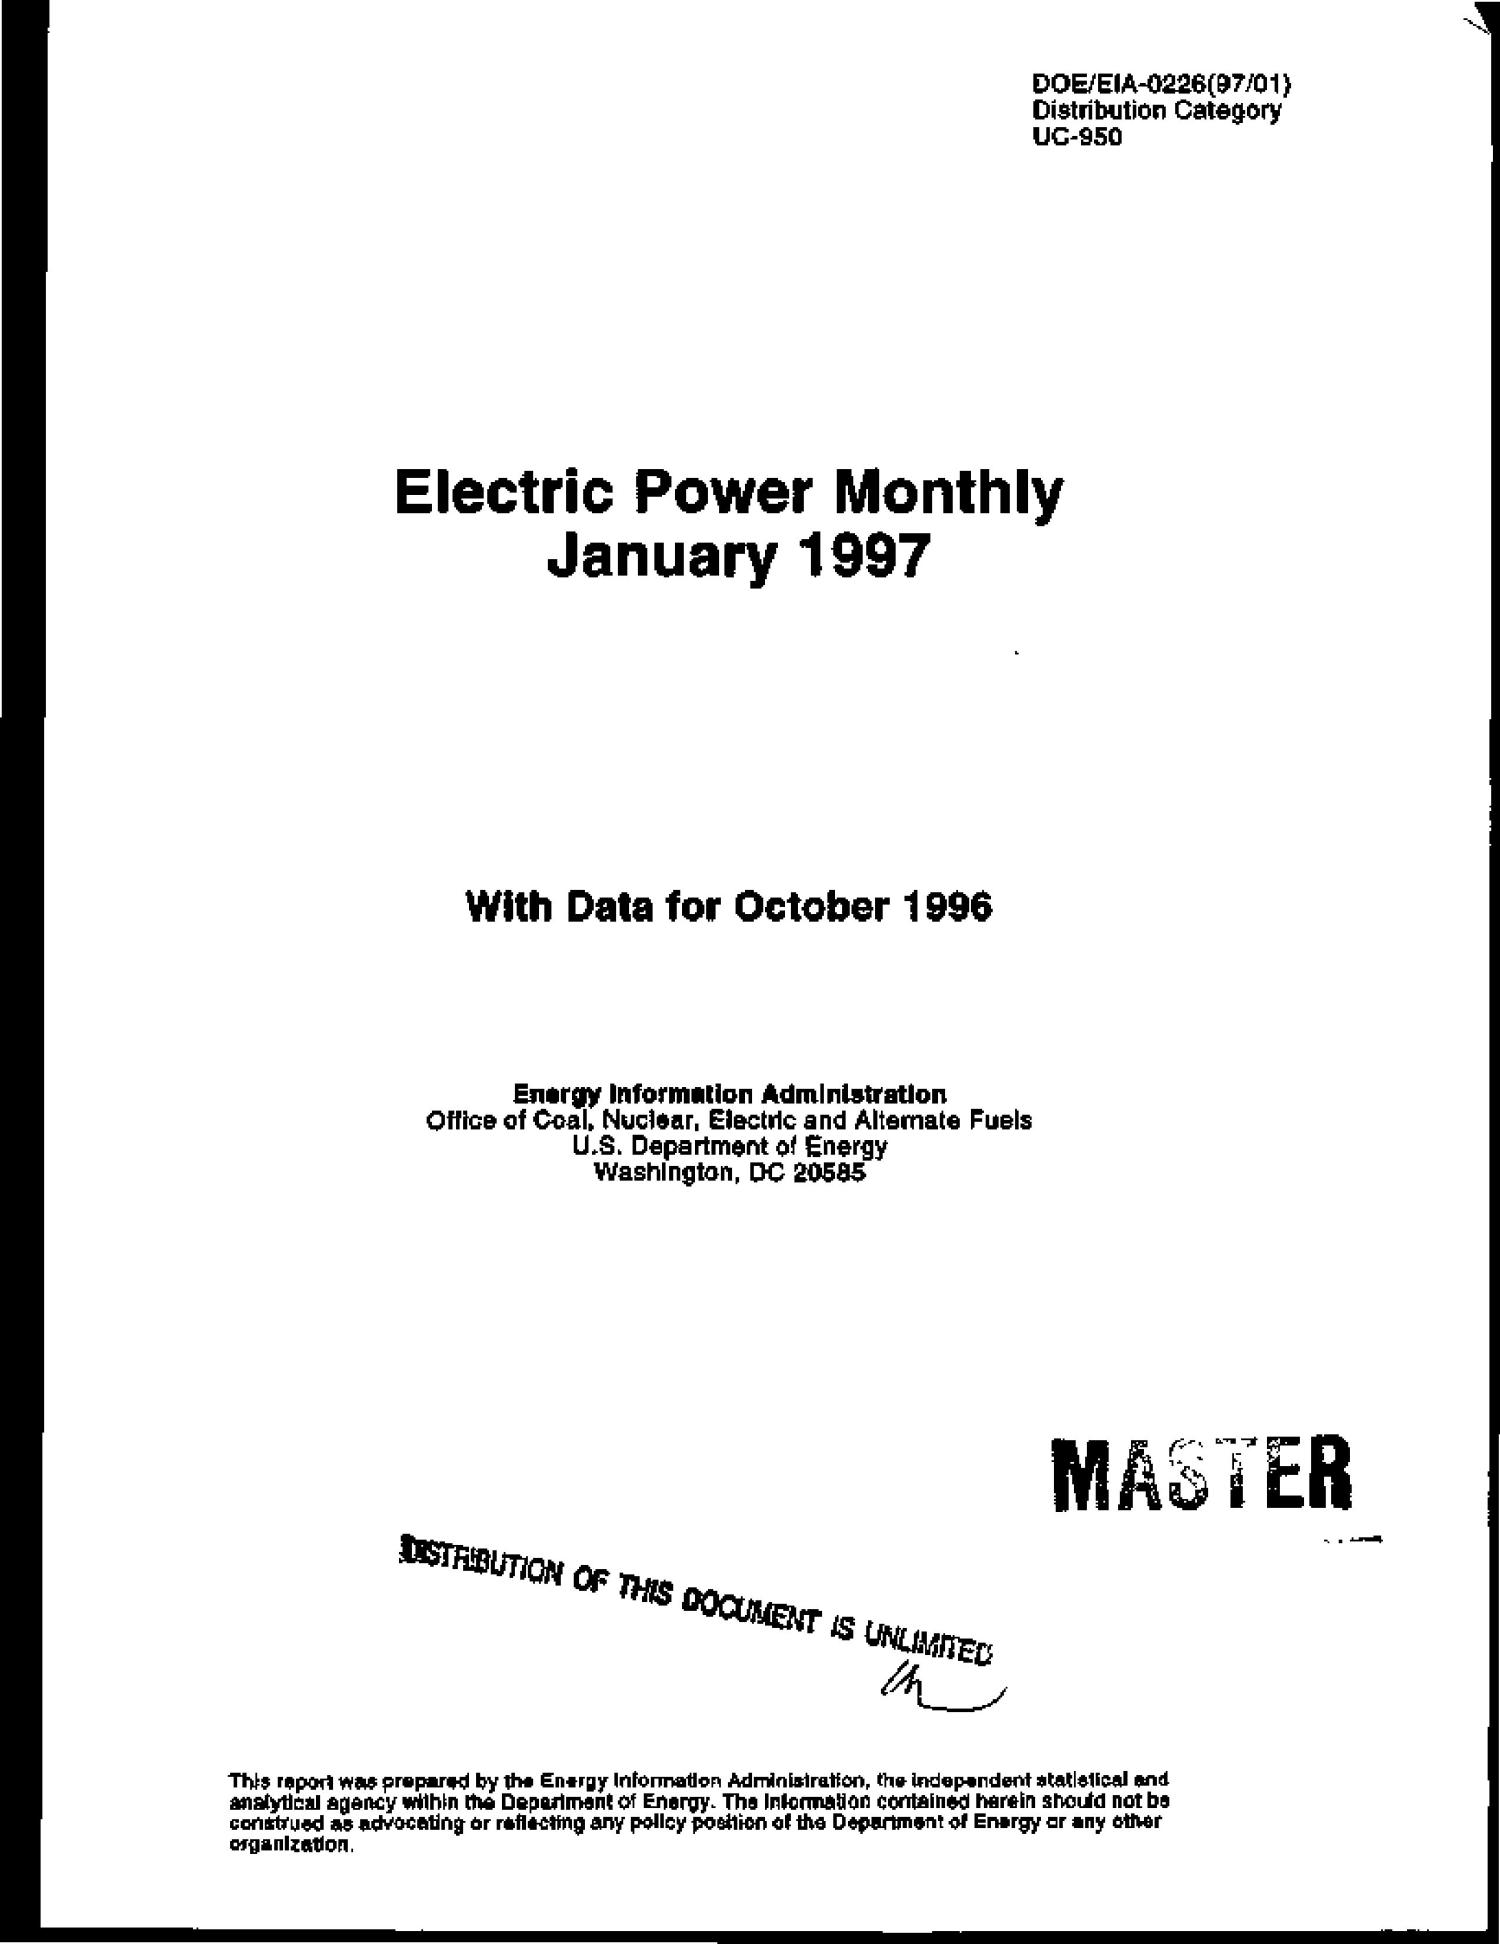 Electric power monthly January 1997 with data for October 1996                                                                                                      [Sequence #]: 1 of 177